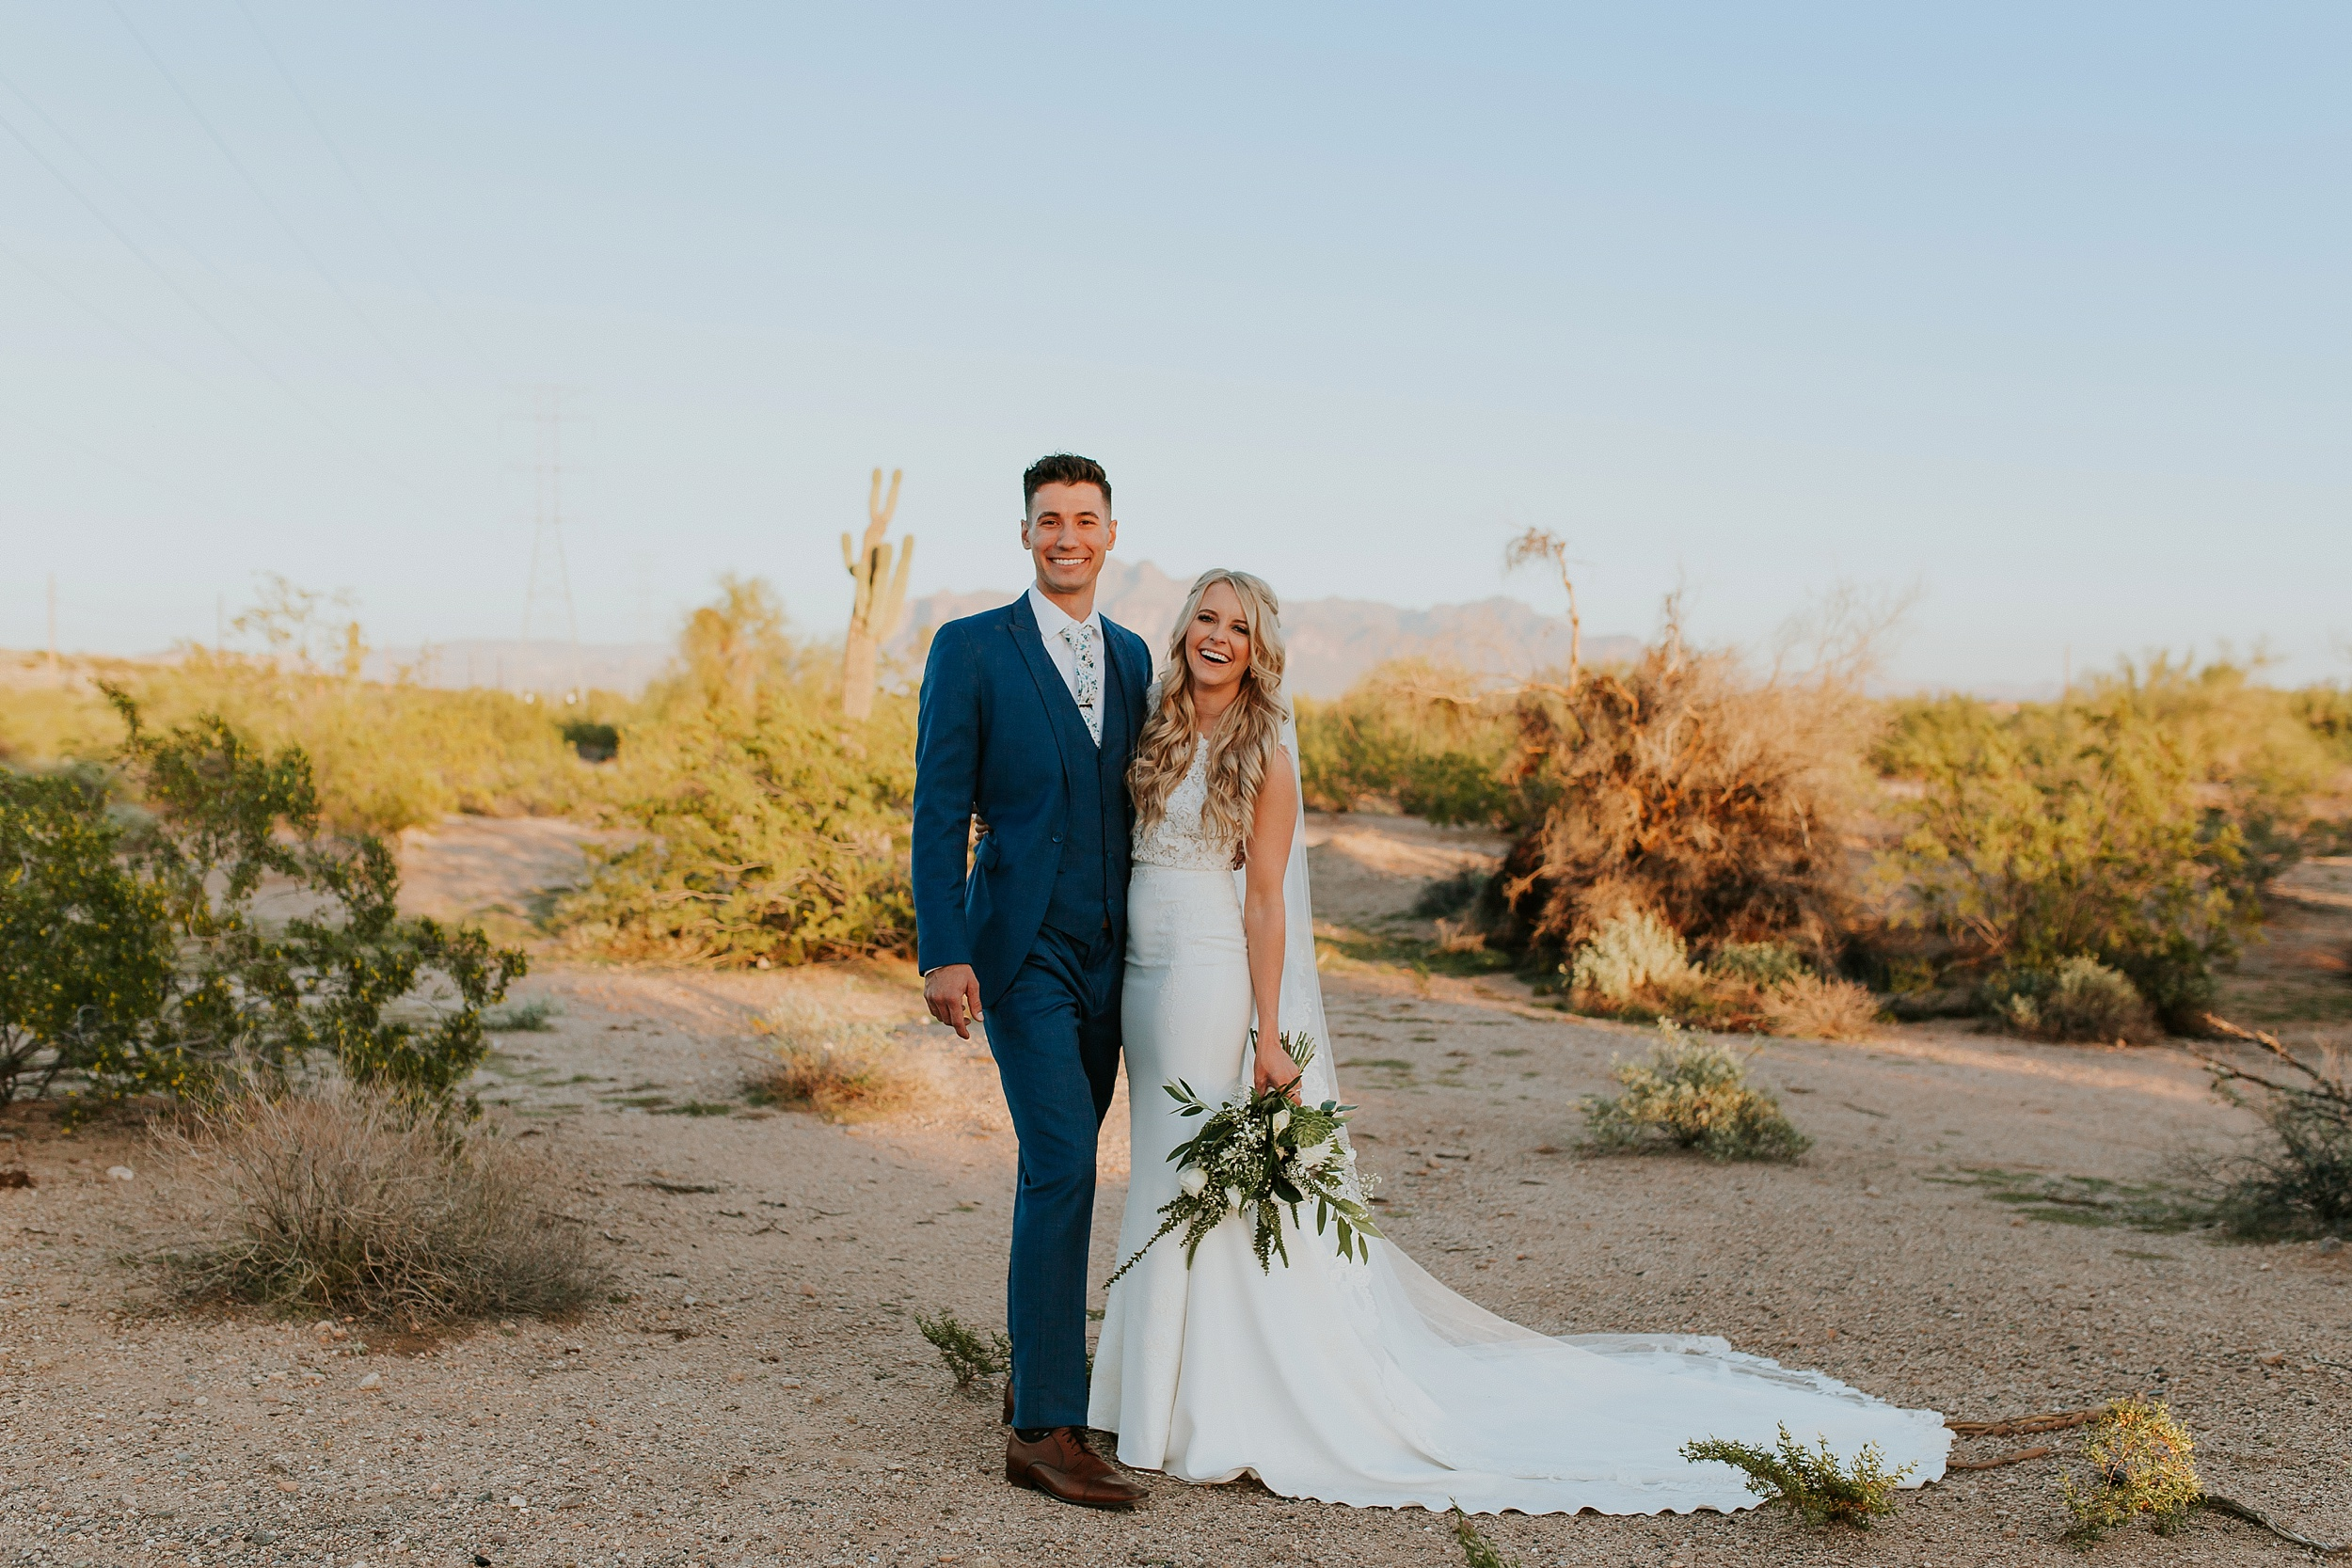 Meg+Bubba_Wedding_Bride+Groom_Portraits_Arizona-94.jpg